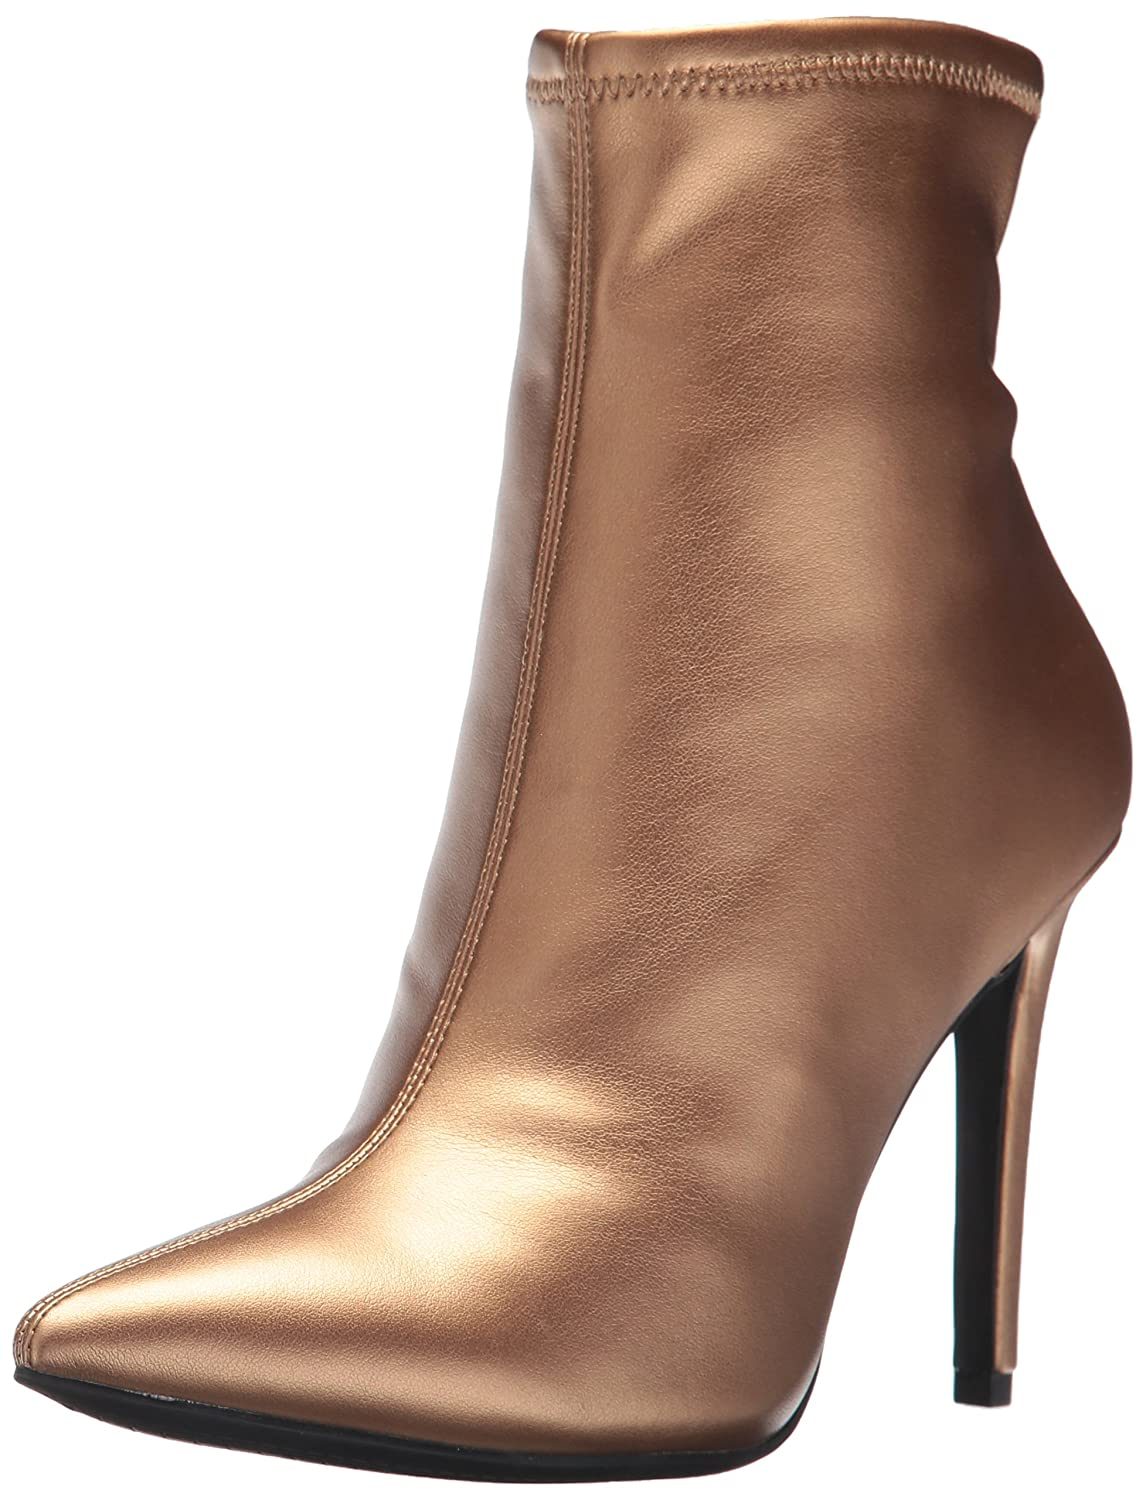 Jessica Simpson Women's Pelina Fashion Boot B071FHYKT5 9 B(M) US|Gold Digger